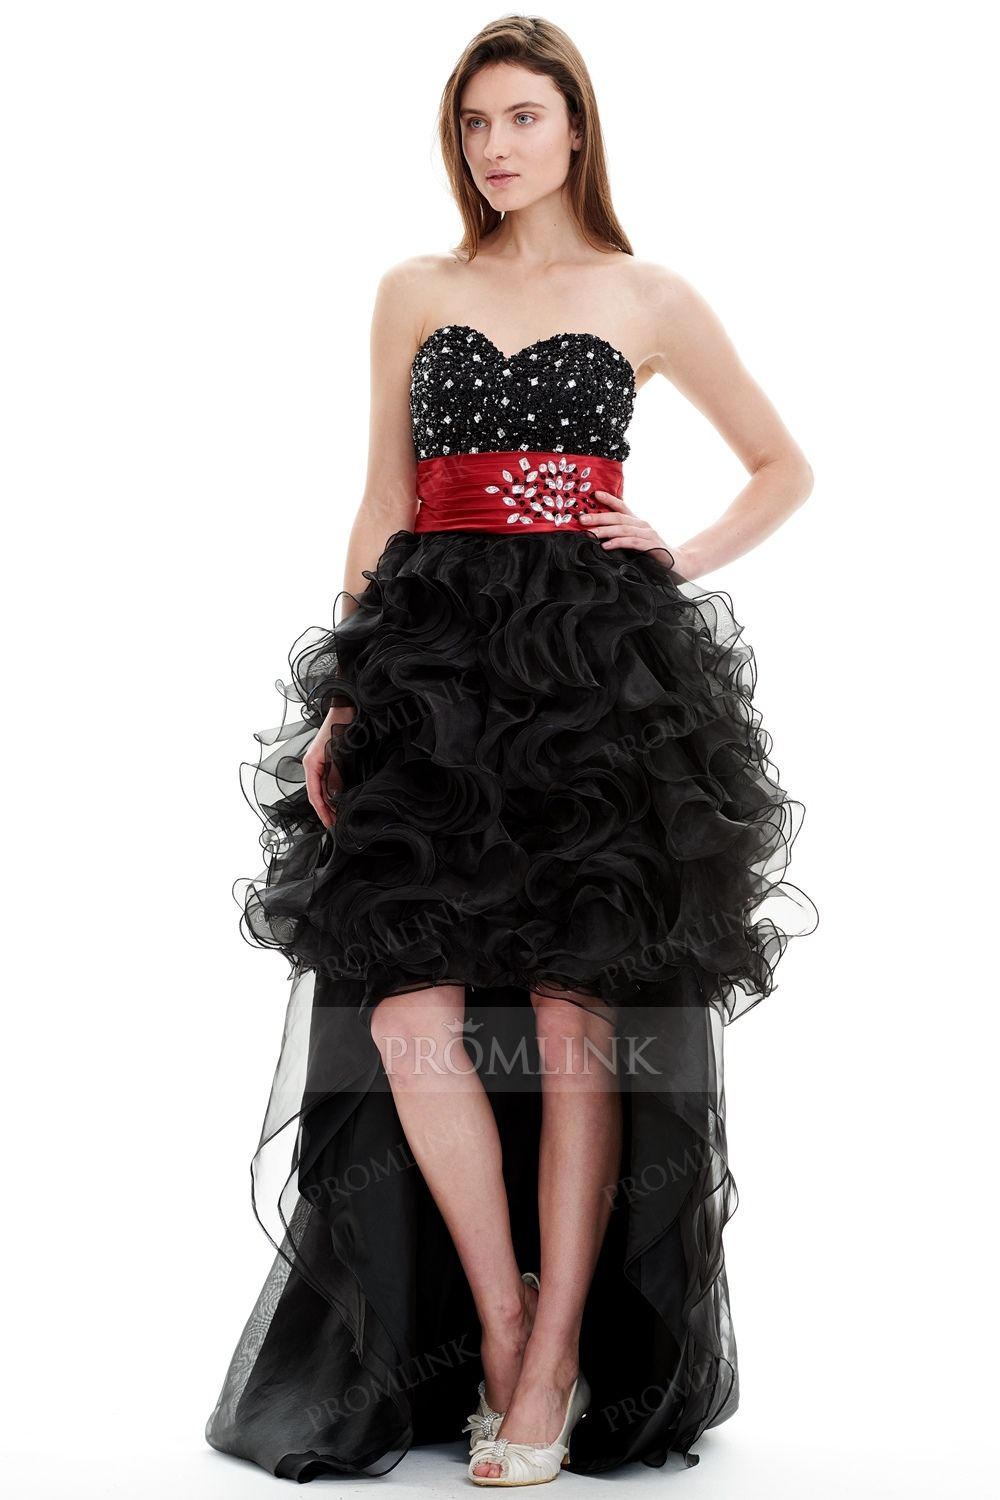 Sweetheart highlow black prom cocktail dress cocktail dresses